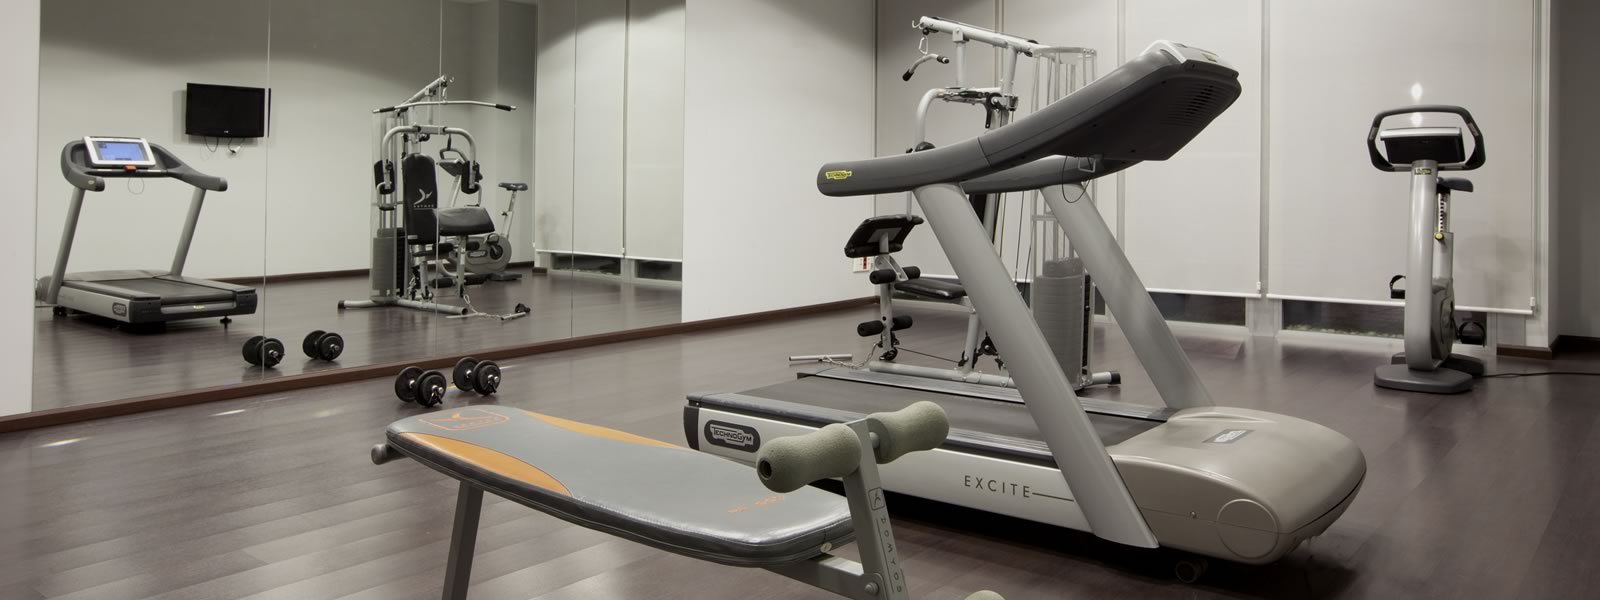 Get fit while you enjoy your stay.